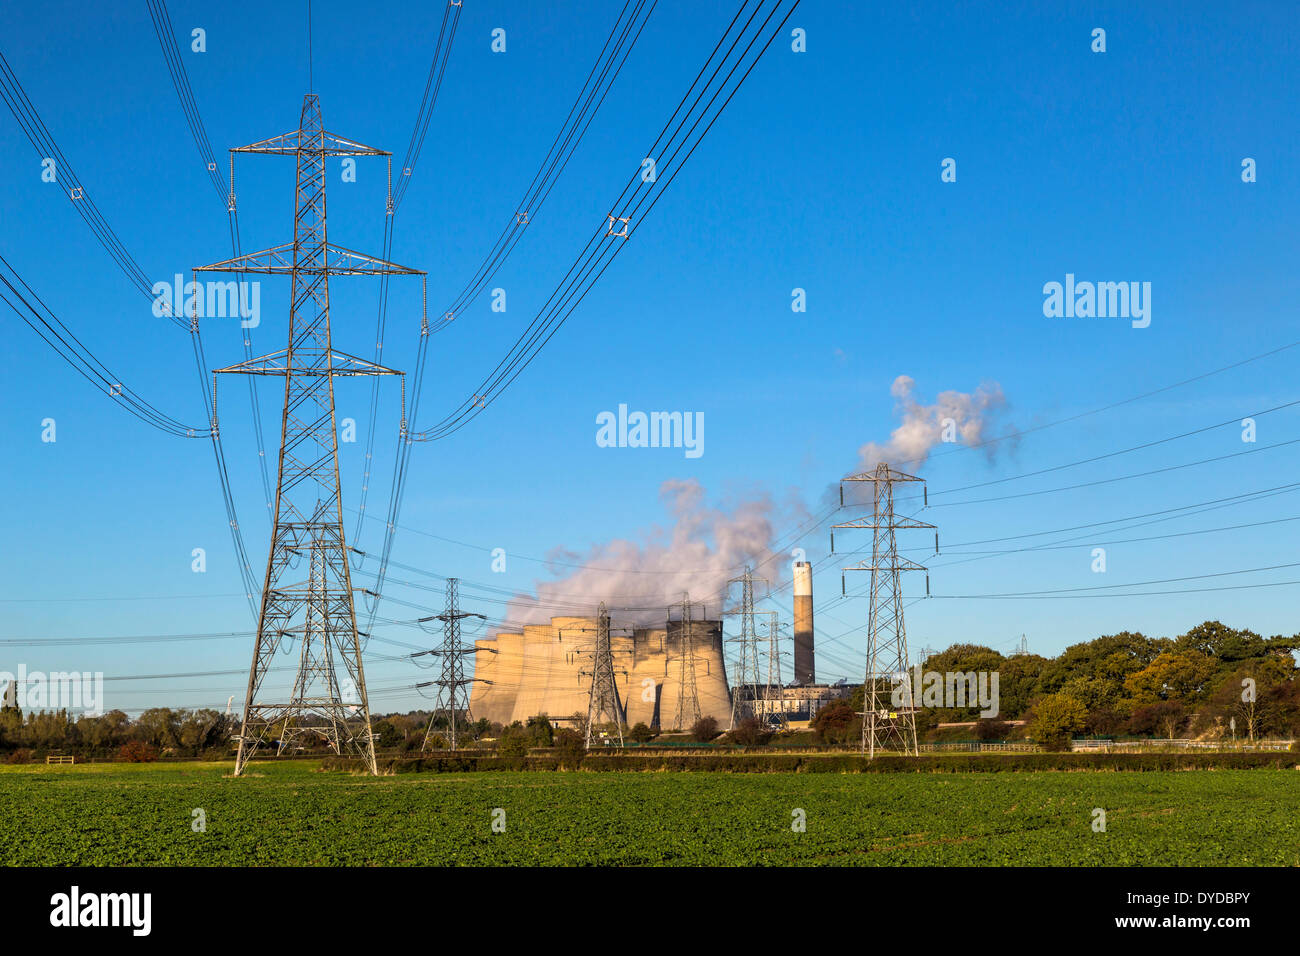 Ratcliffe on Soar power station and transmission lines. - Stock Image